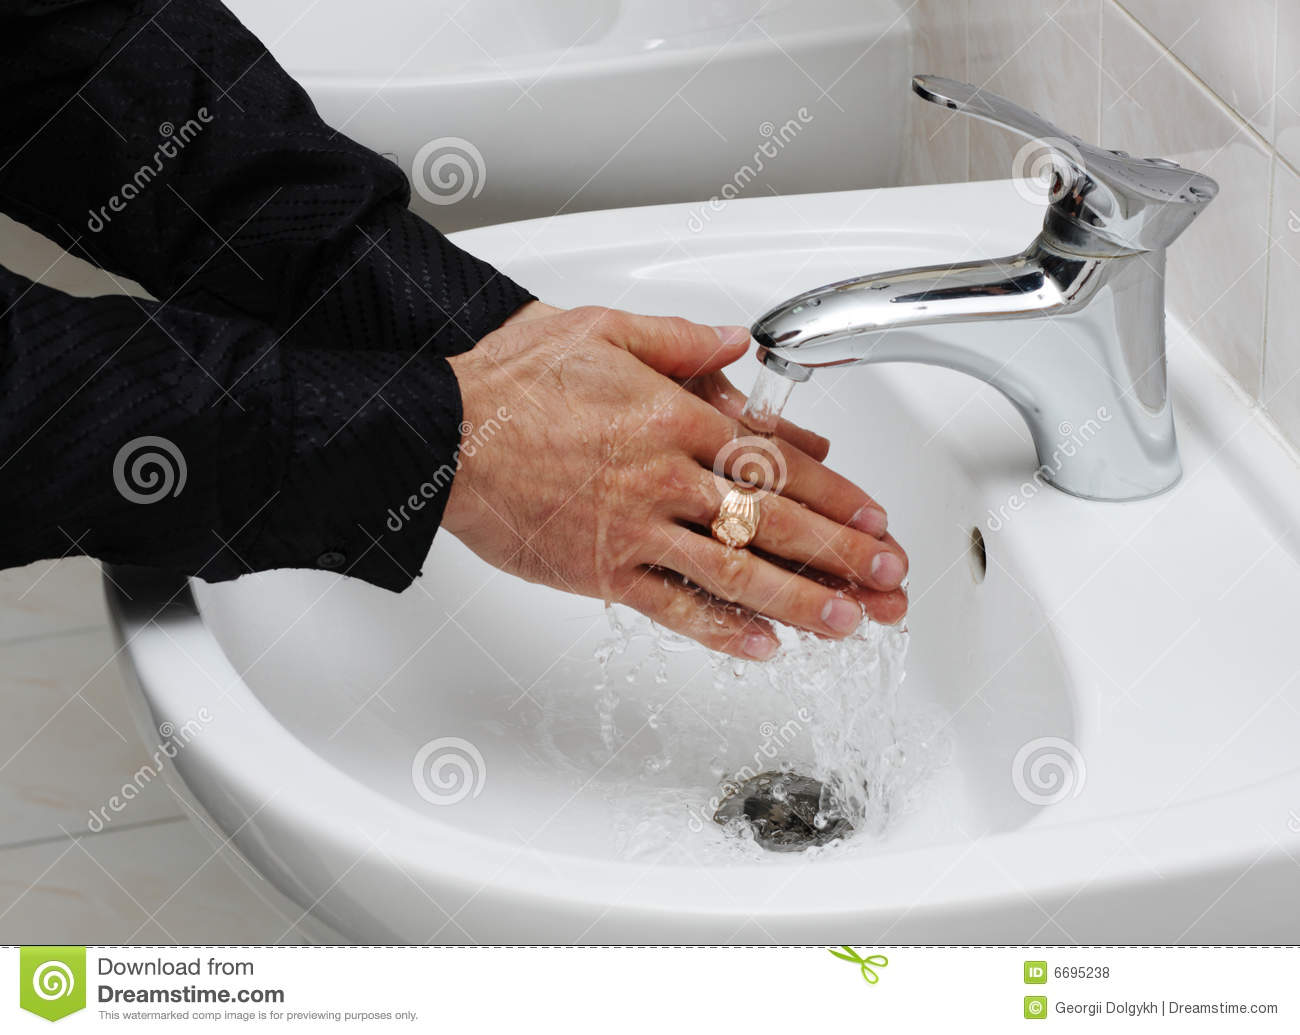 Man Washing His Hands Under Running Water Royalty Free